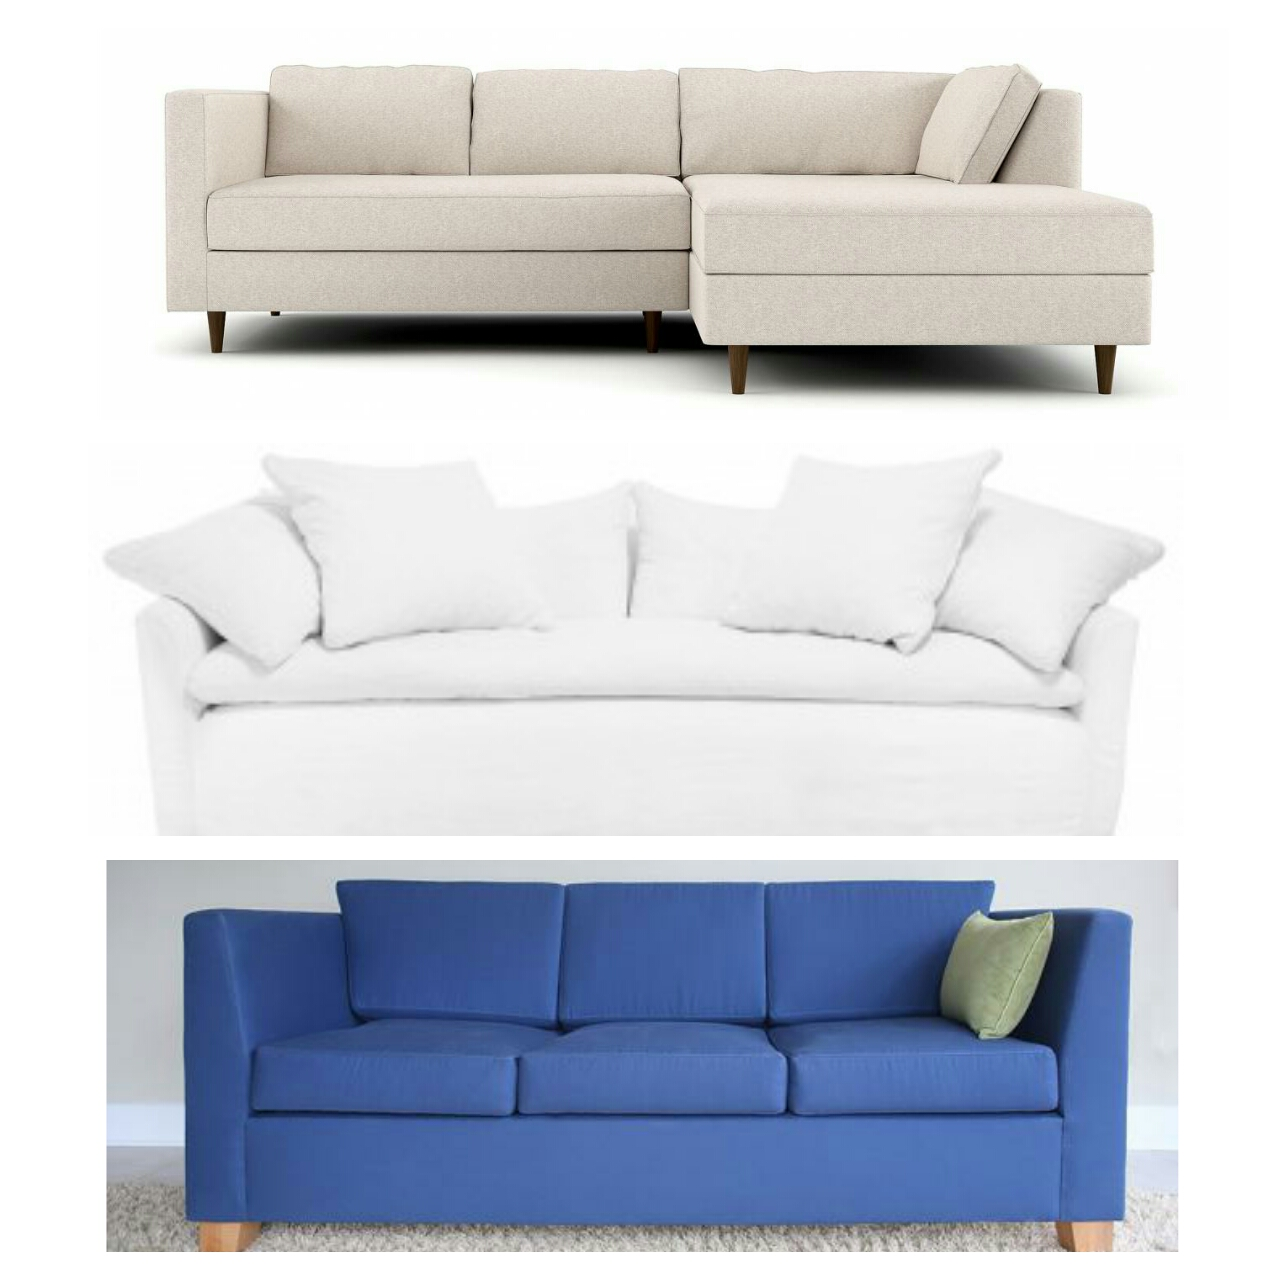 non toxic sofa guide which sofa brand is non toxic rh gonewmommy com Lounge Sofa Office Cubicles